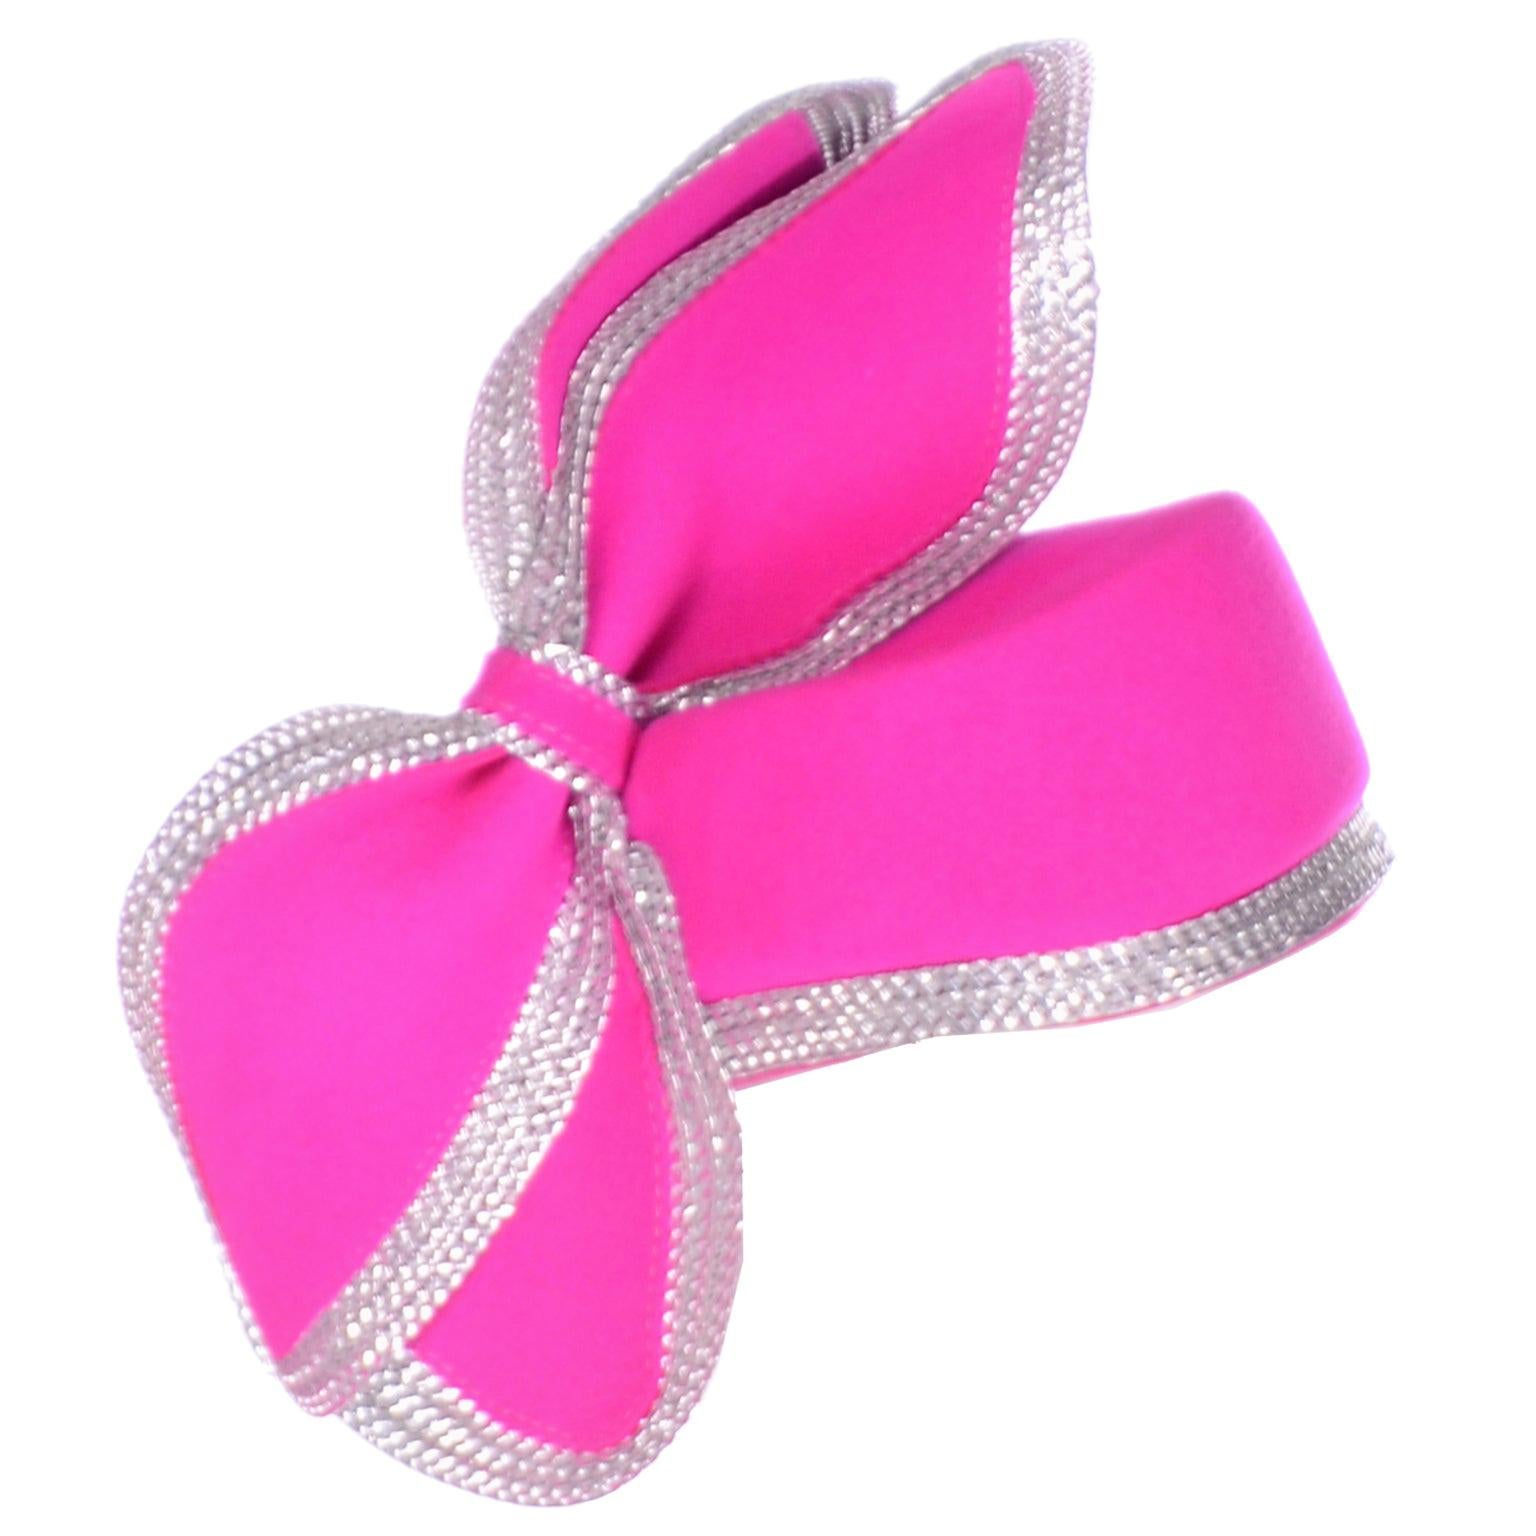 Vintage Adolfo II Hot Pink and Silver Structured Bow Statement Hat